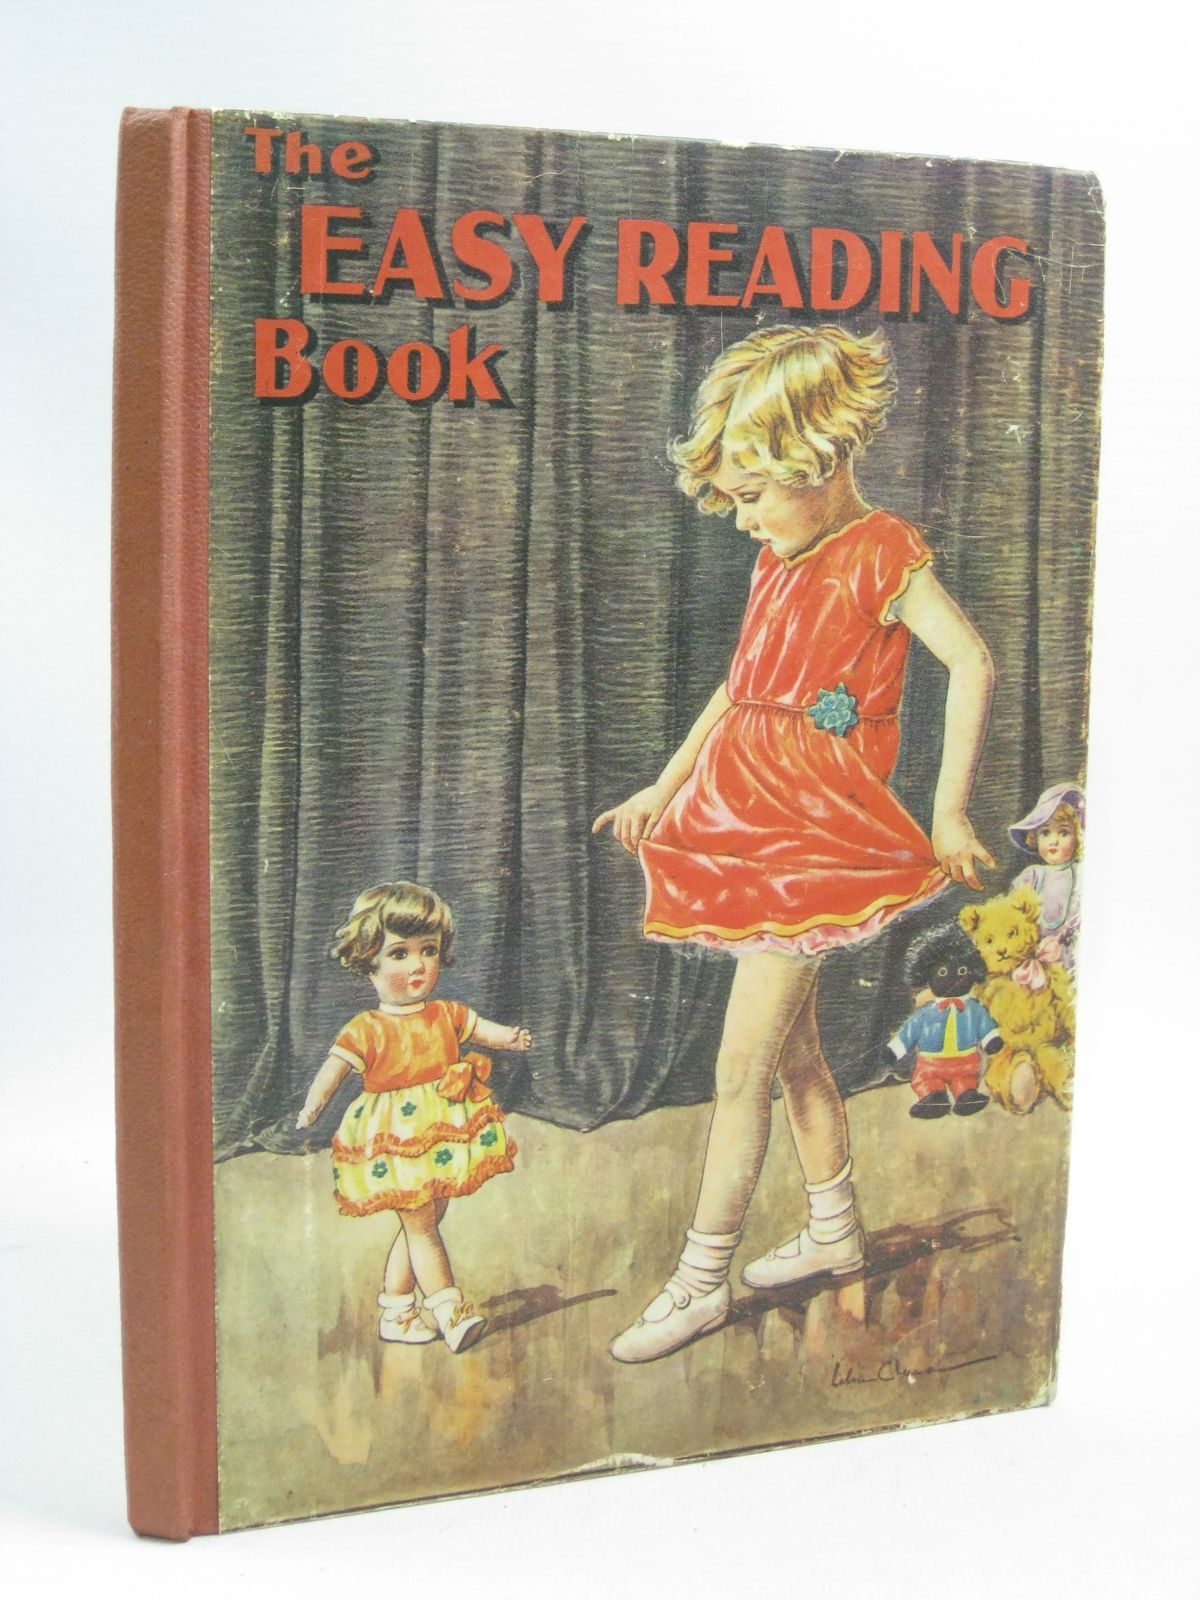 Photo of THE EASY READING BOOK written by Lambert, H.G.C. Marsh illustrated by Lambert, H.G.C. Marsh published by Ward, Lock & Co. Limited (STOCK CODE: 1505183)  for sale by Stella & Rose's Books